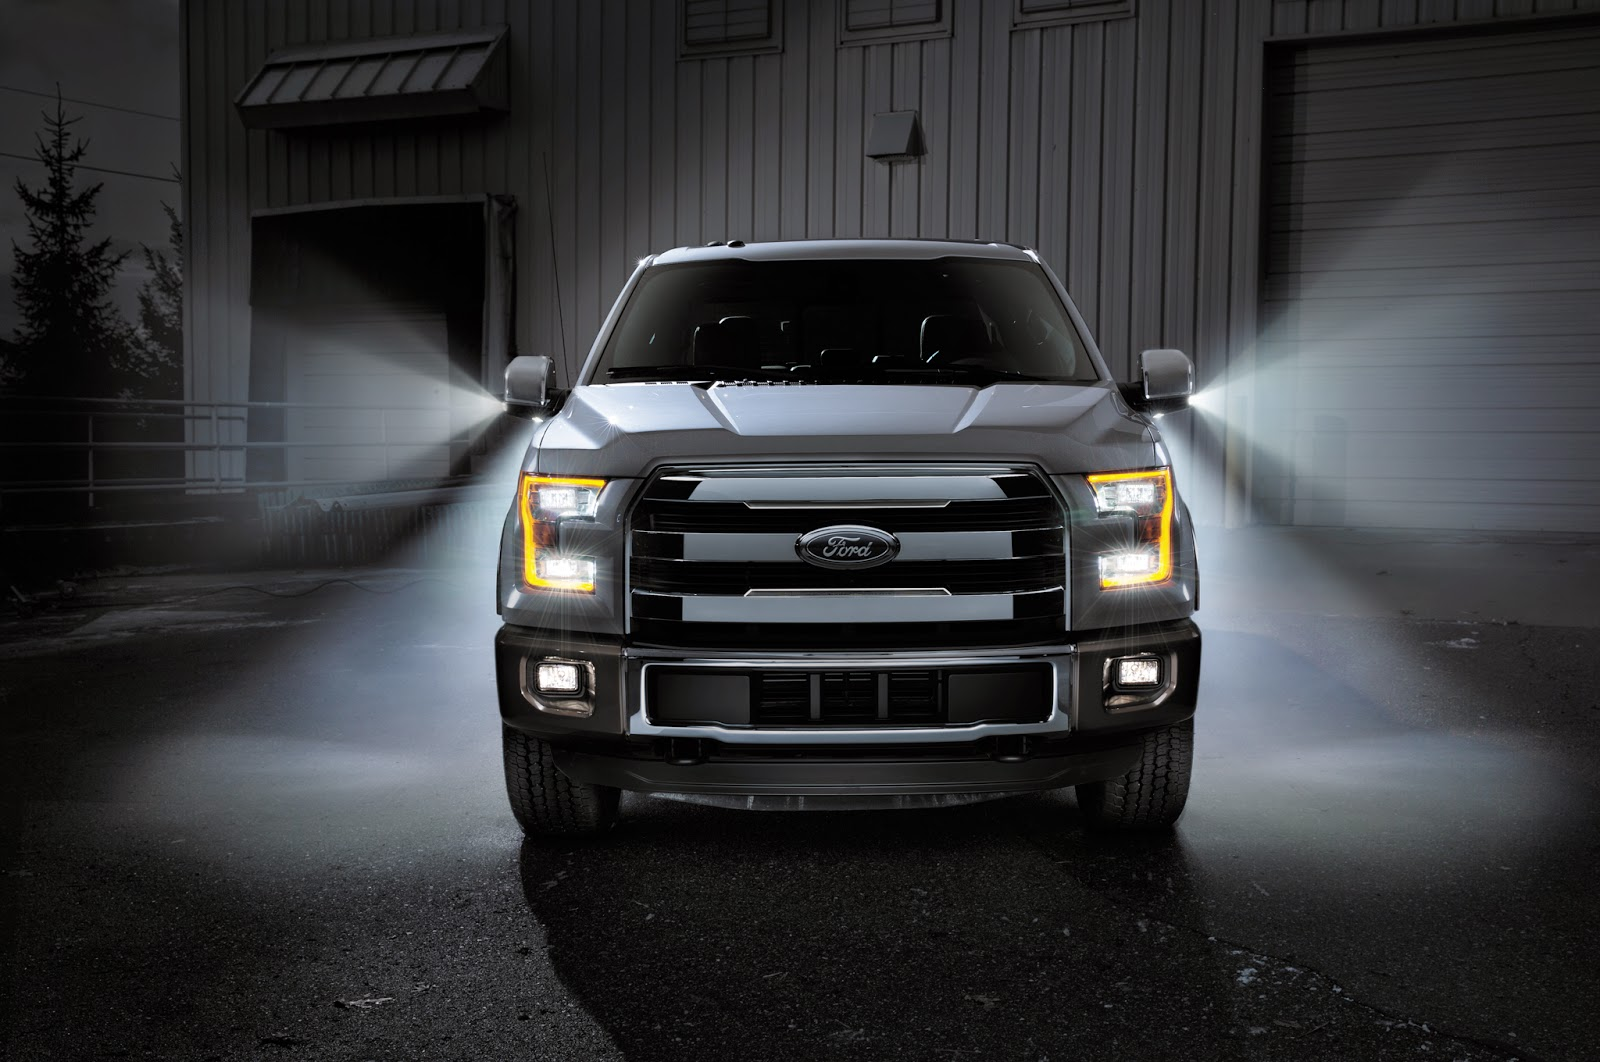 Ford F-150 & Focus Electric Named 2015 Greenest Vehicles